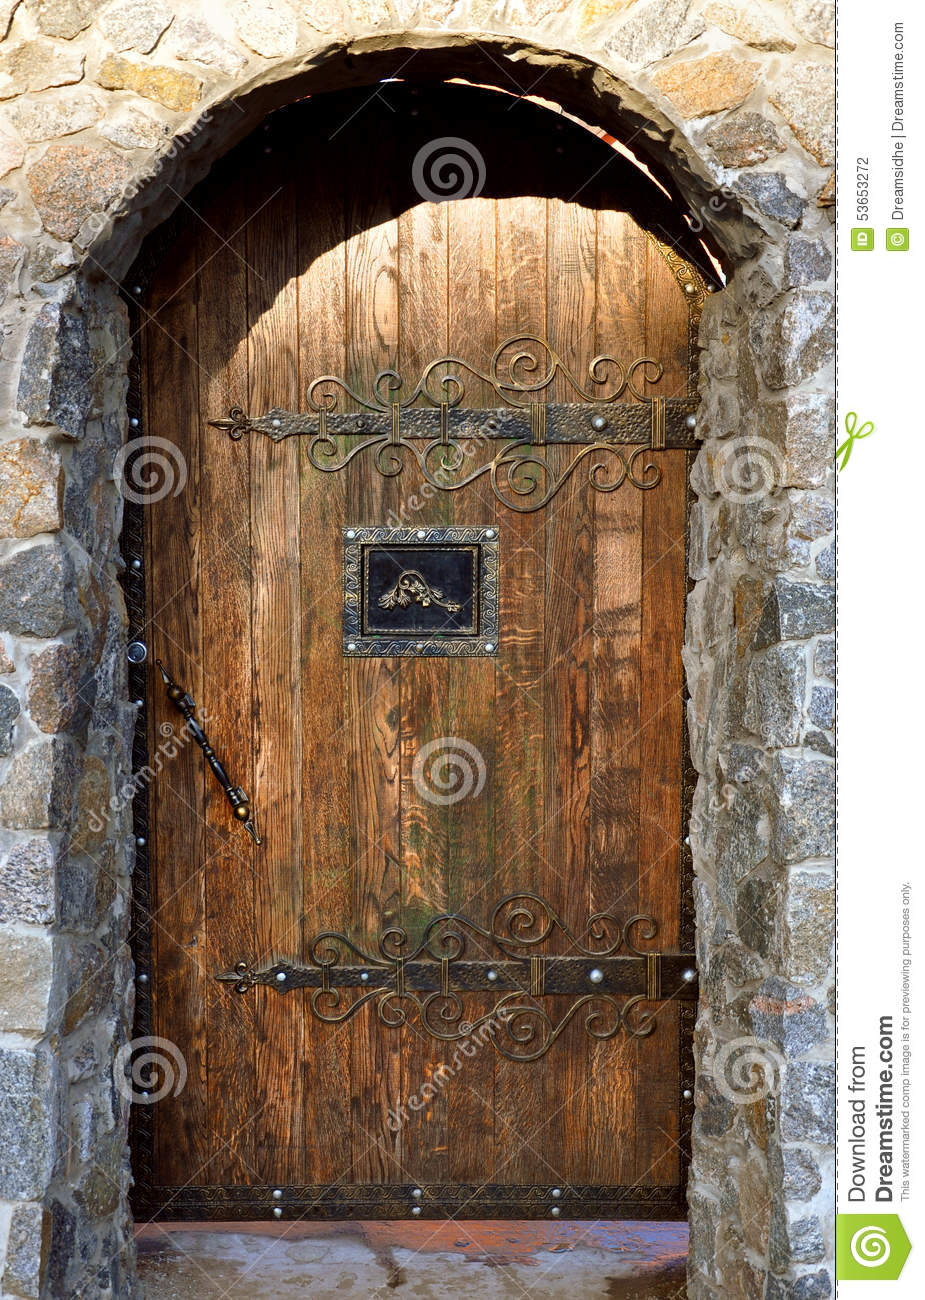 Front Door Design Traditional Brick Arch With Wooden Doors Stock Photo - Image: 53653272